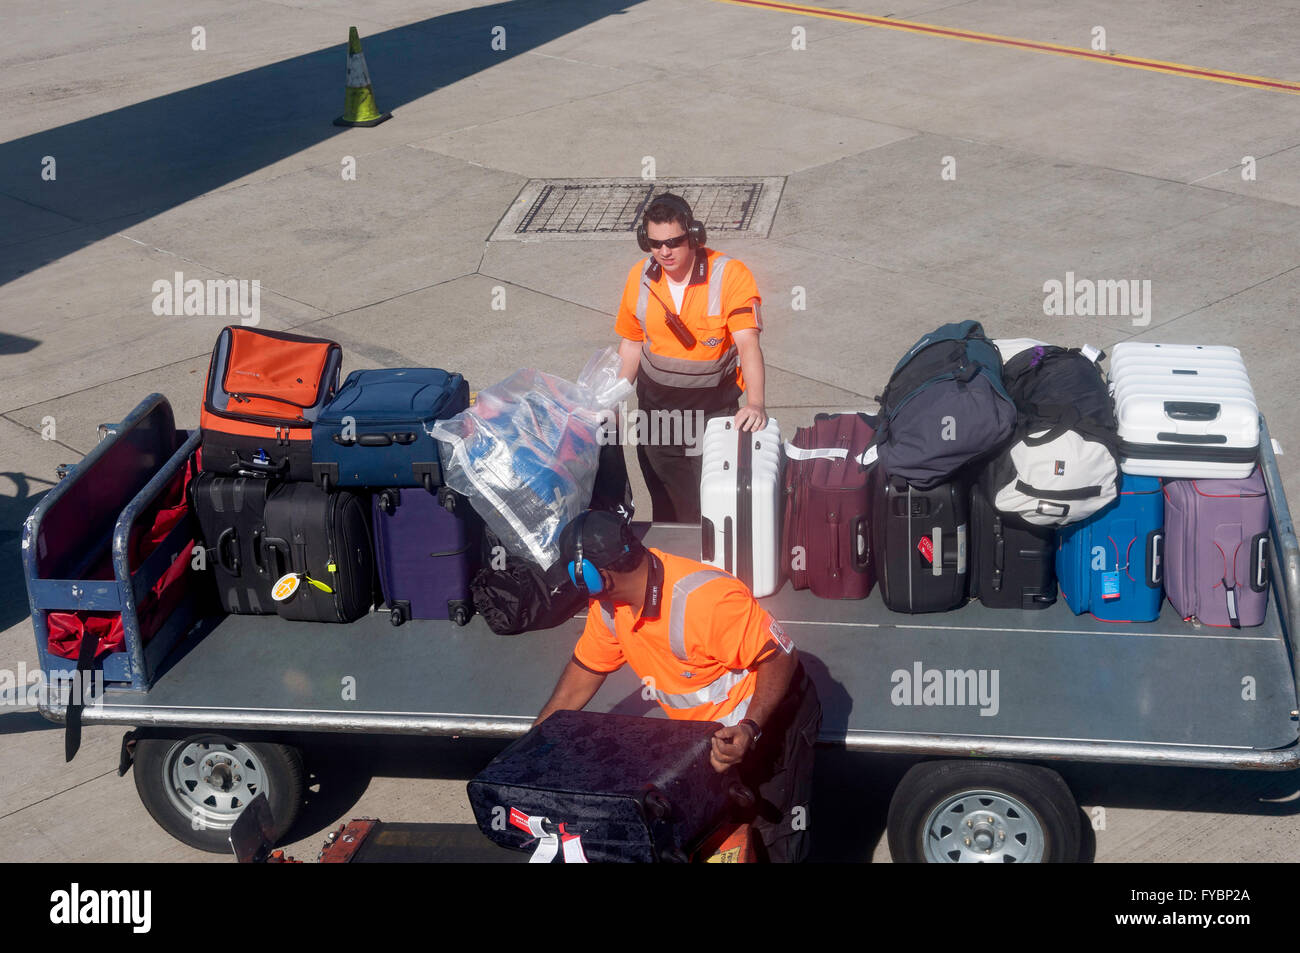 Baggage handlers unloading bags from aircraft at Sydney Kingsford Smith Airport, Mascot, Sydney, New South Wales, - Stock Image